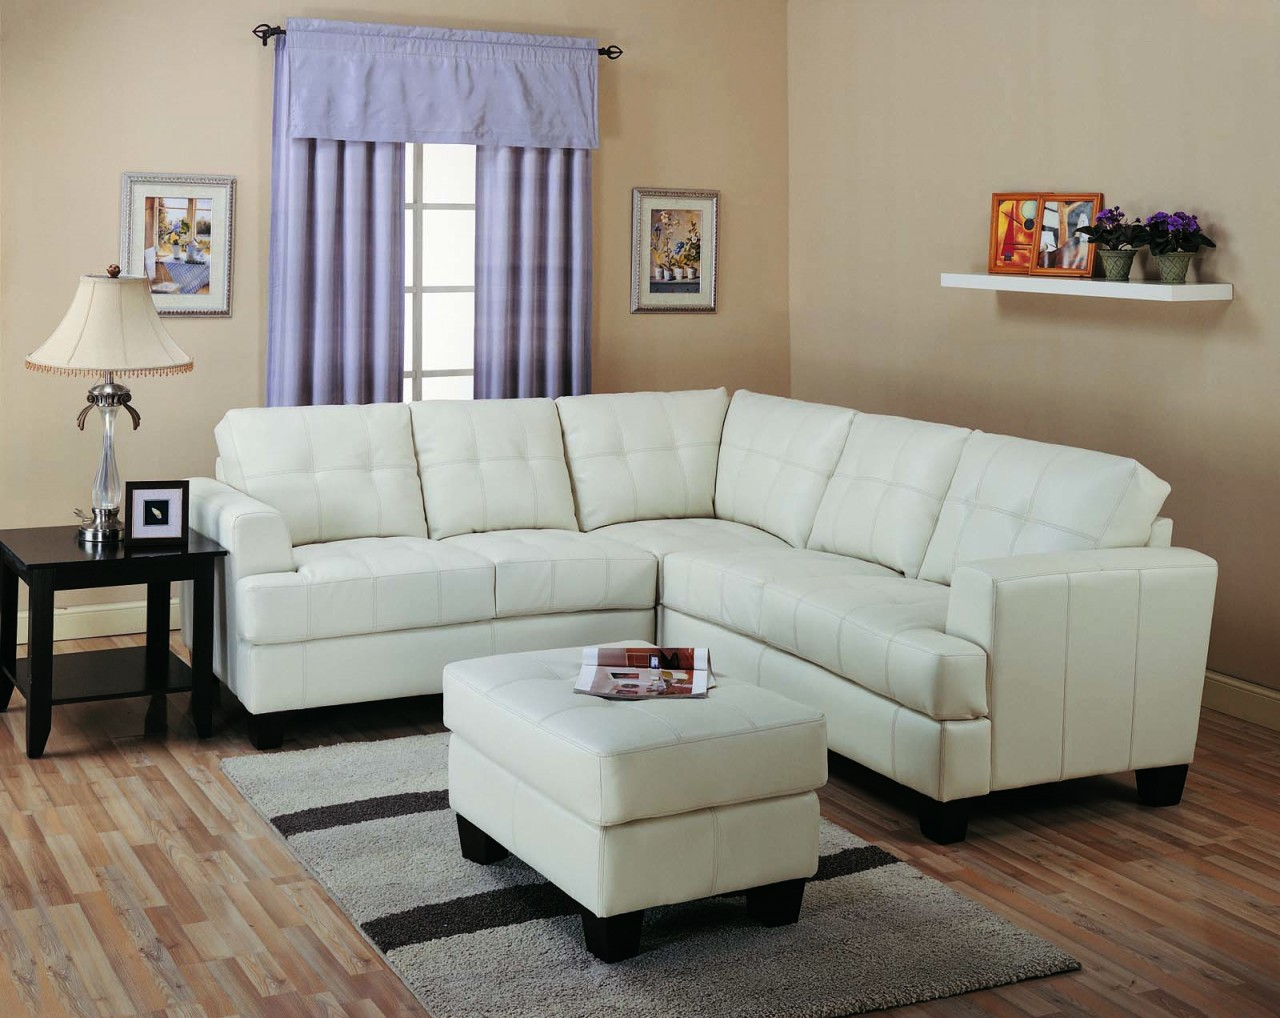 Types of best small sectional couches for small living for Living room sofa